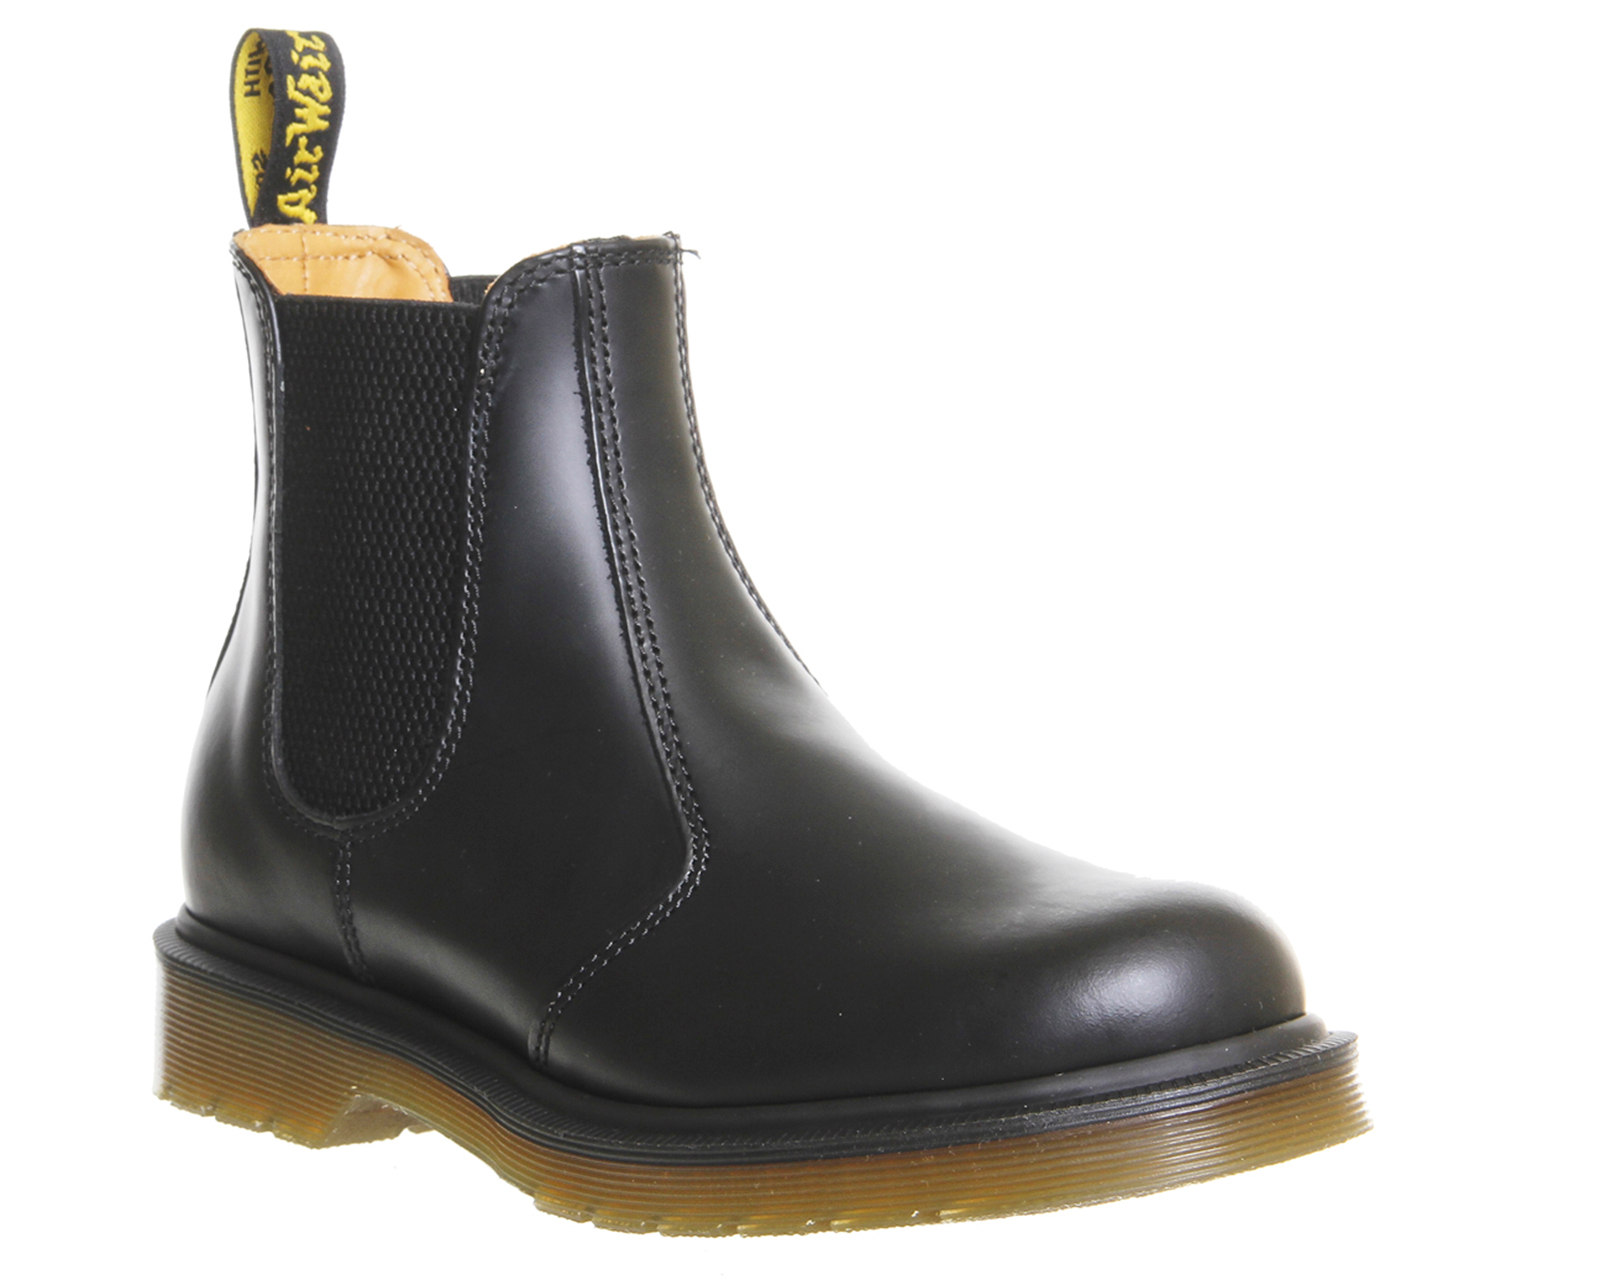 womens dr martens 2976 chelsea boots black leather boots ebay